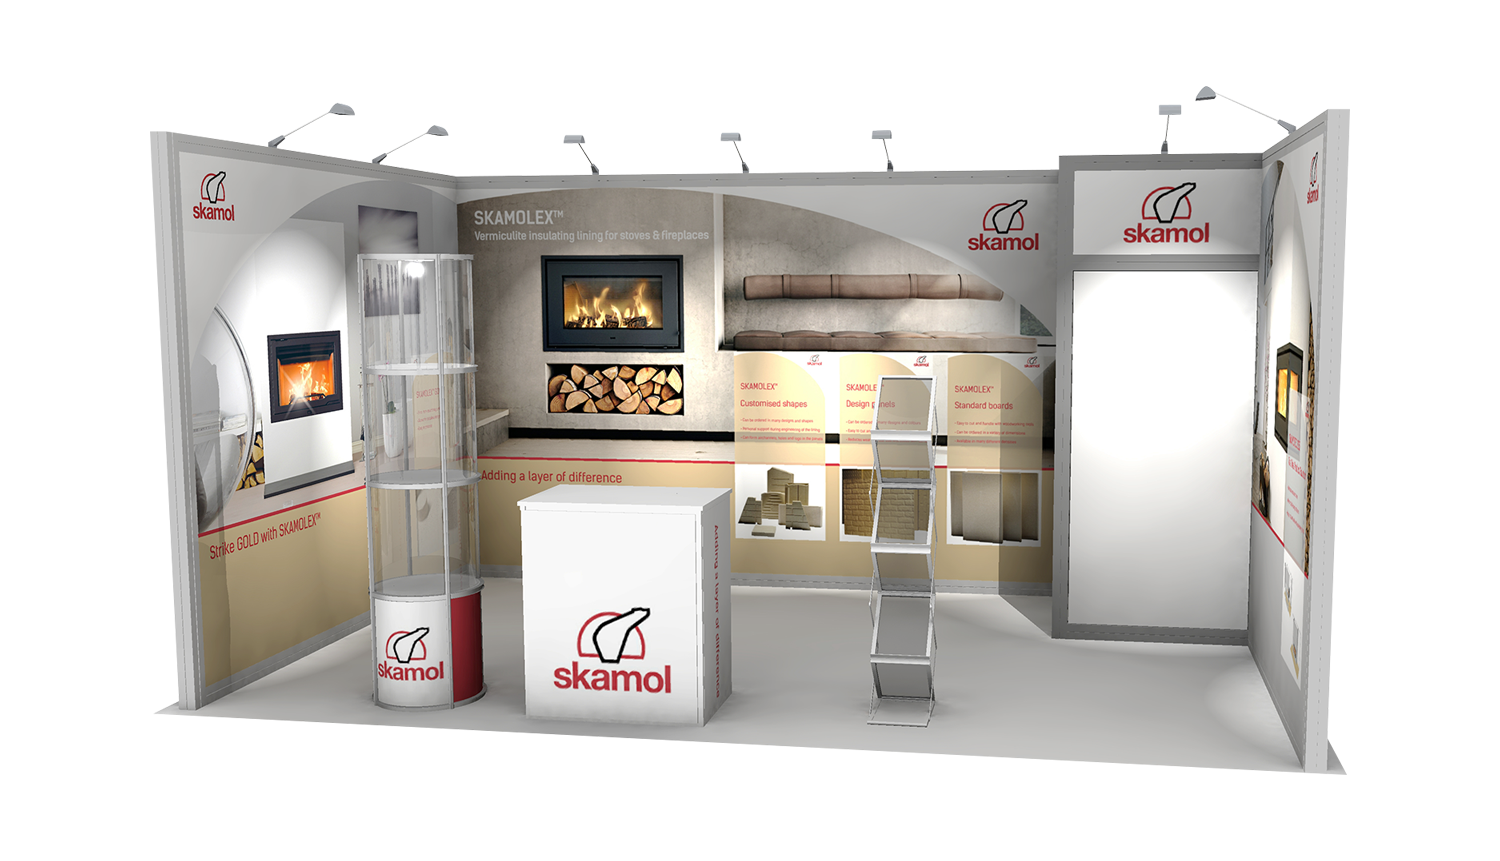 3D_Skamol_messestand